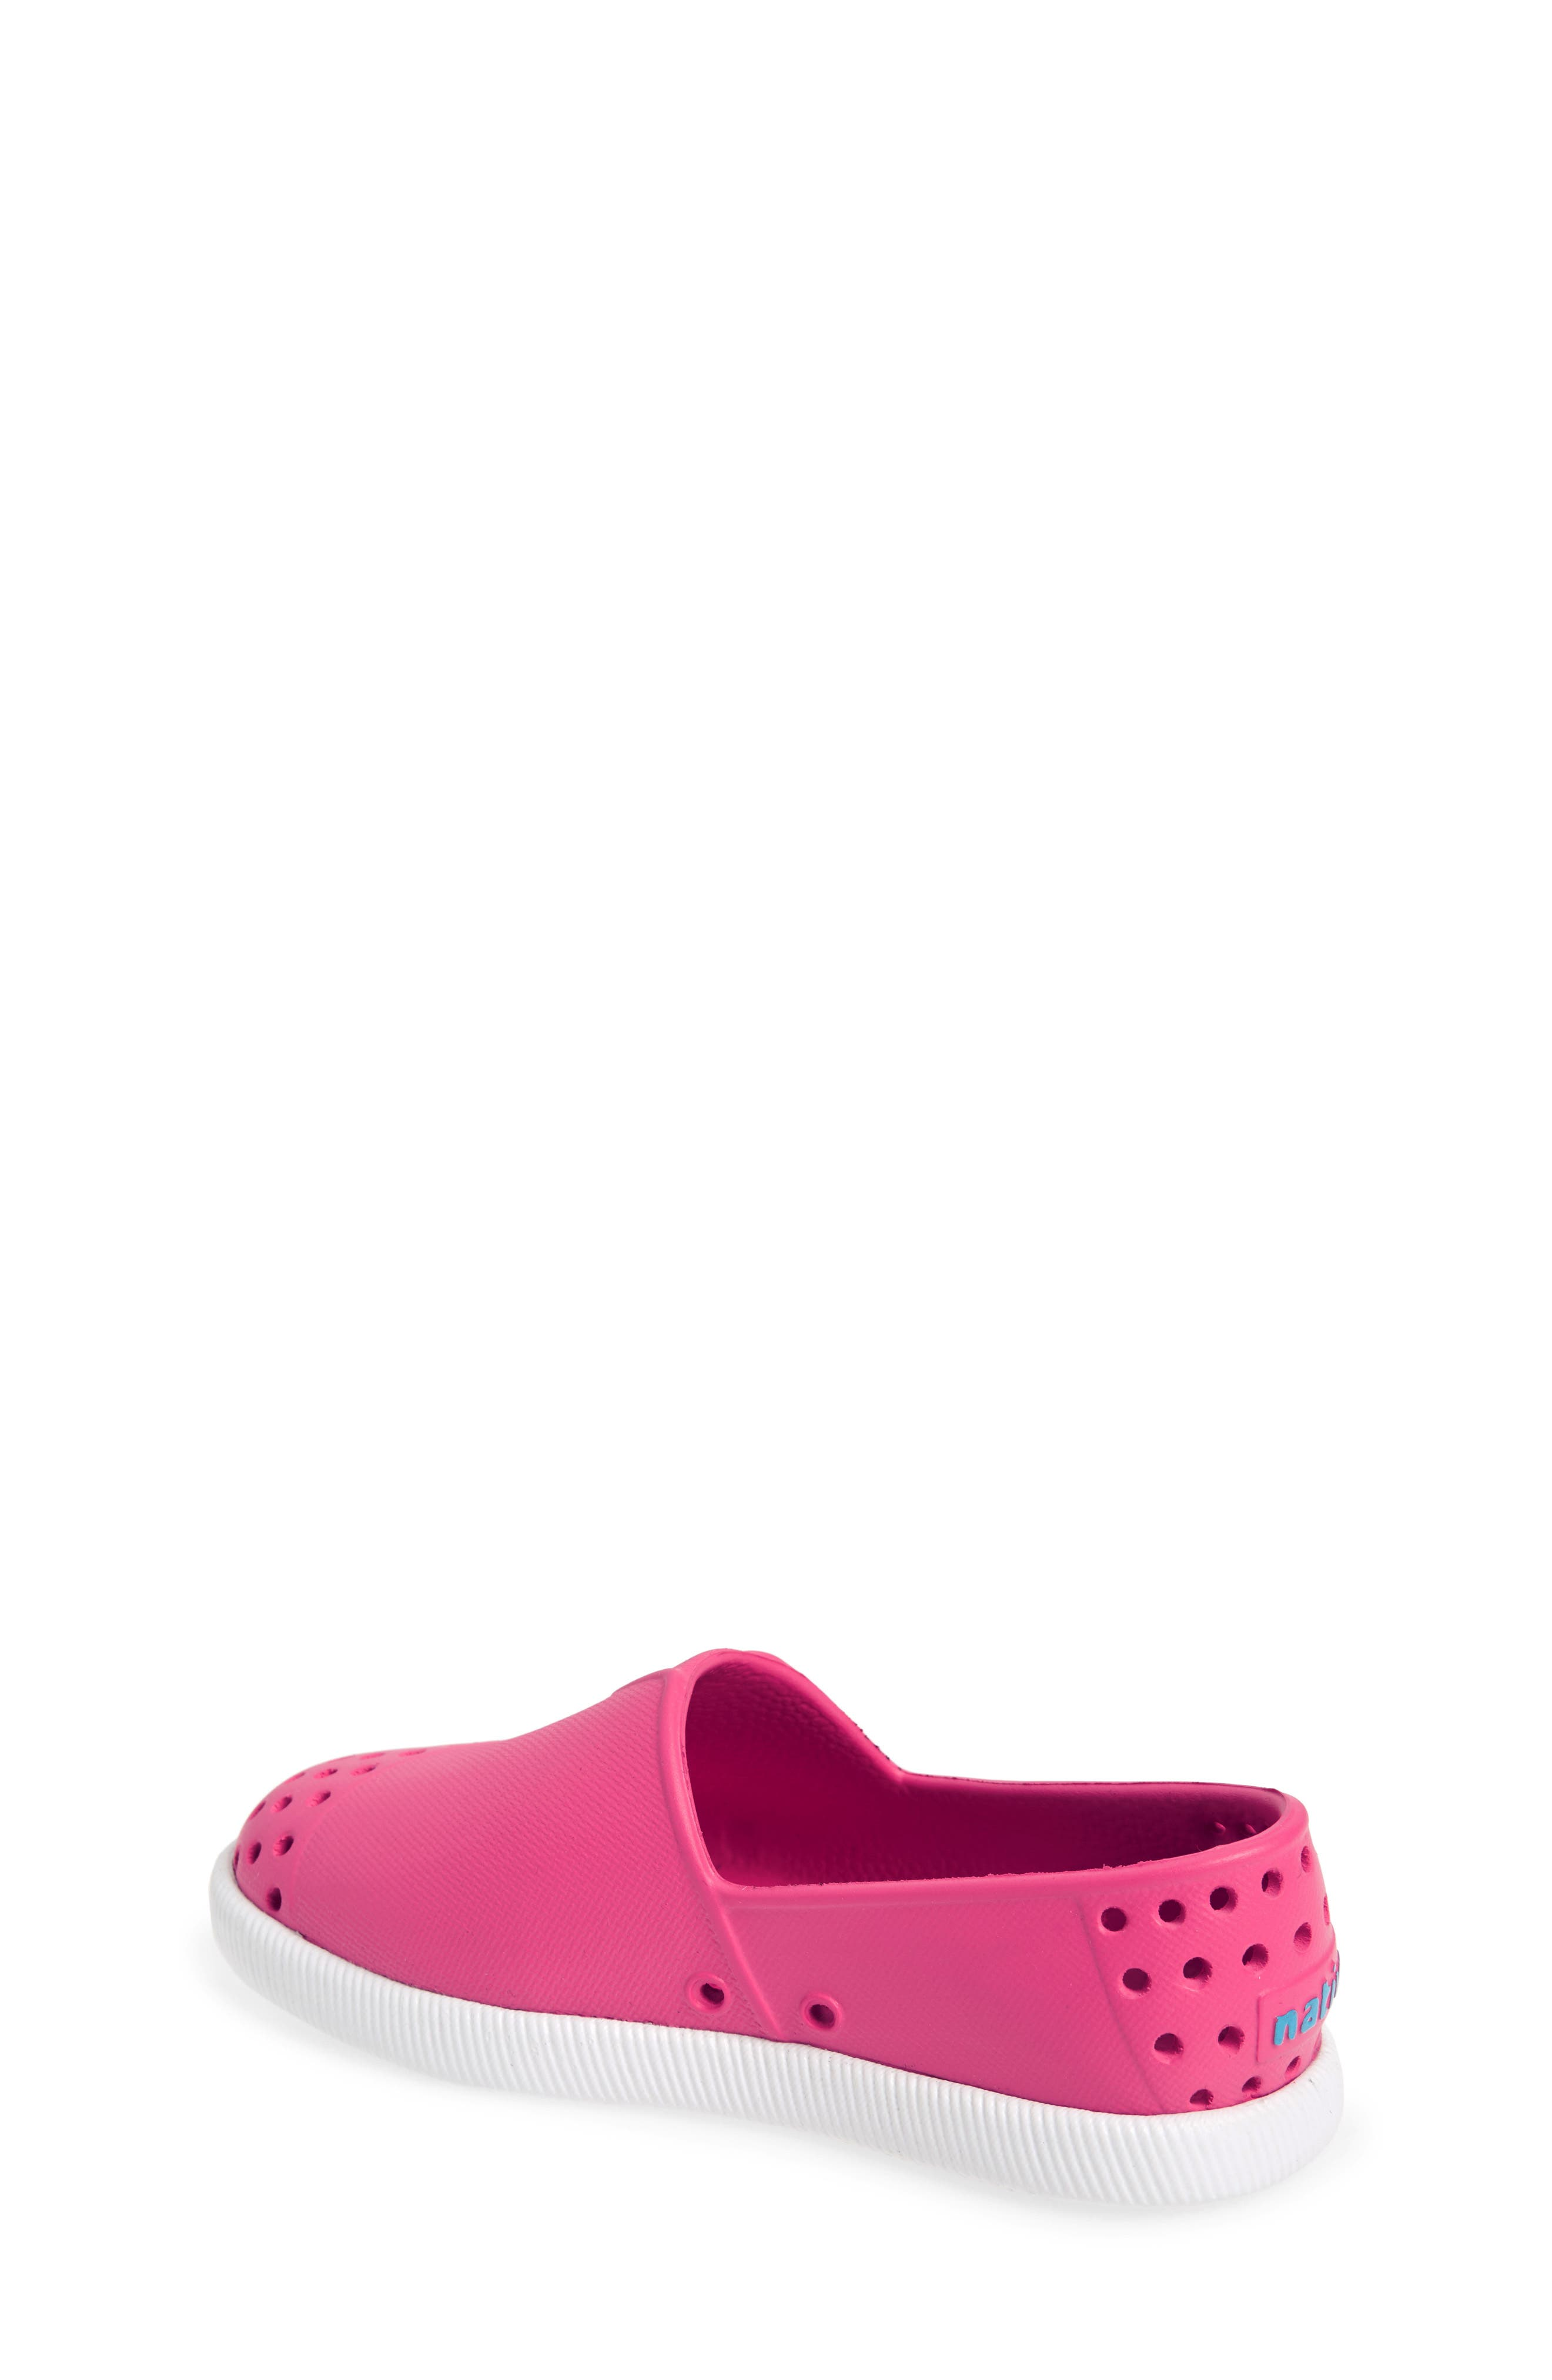 Verona Perforated Water Friendly Slip-On,                             Alternate thumbnail 2, color,                             Hollywood Pink/ Shell White